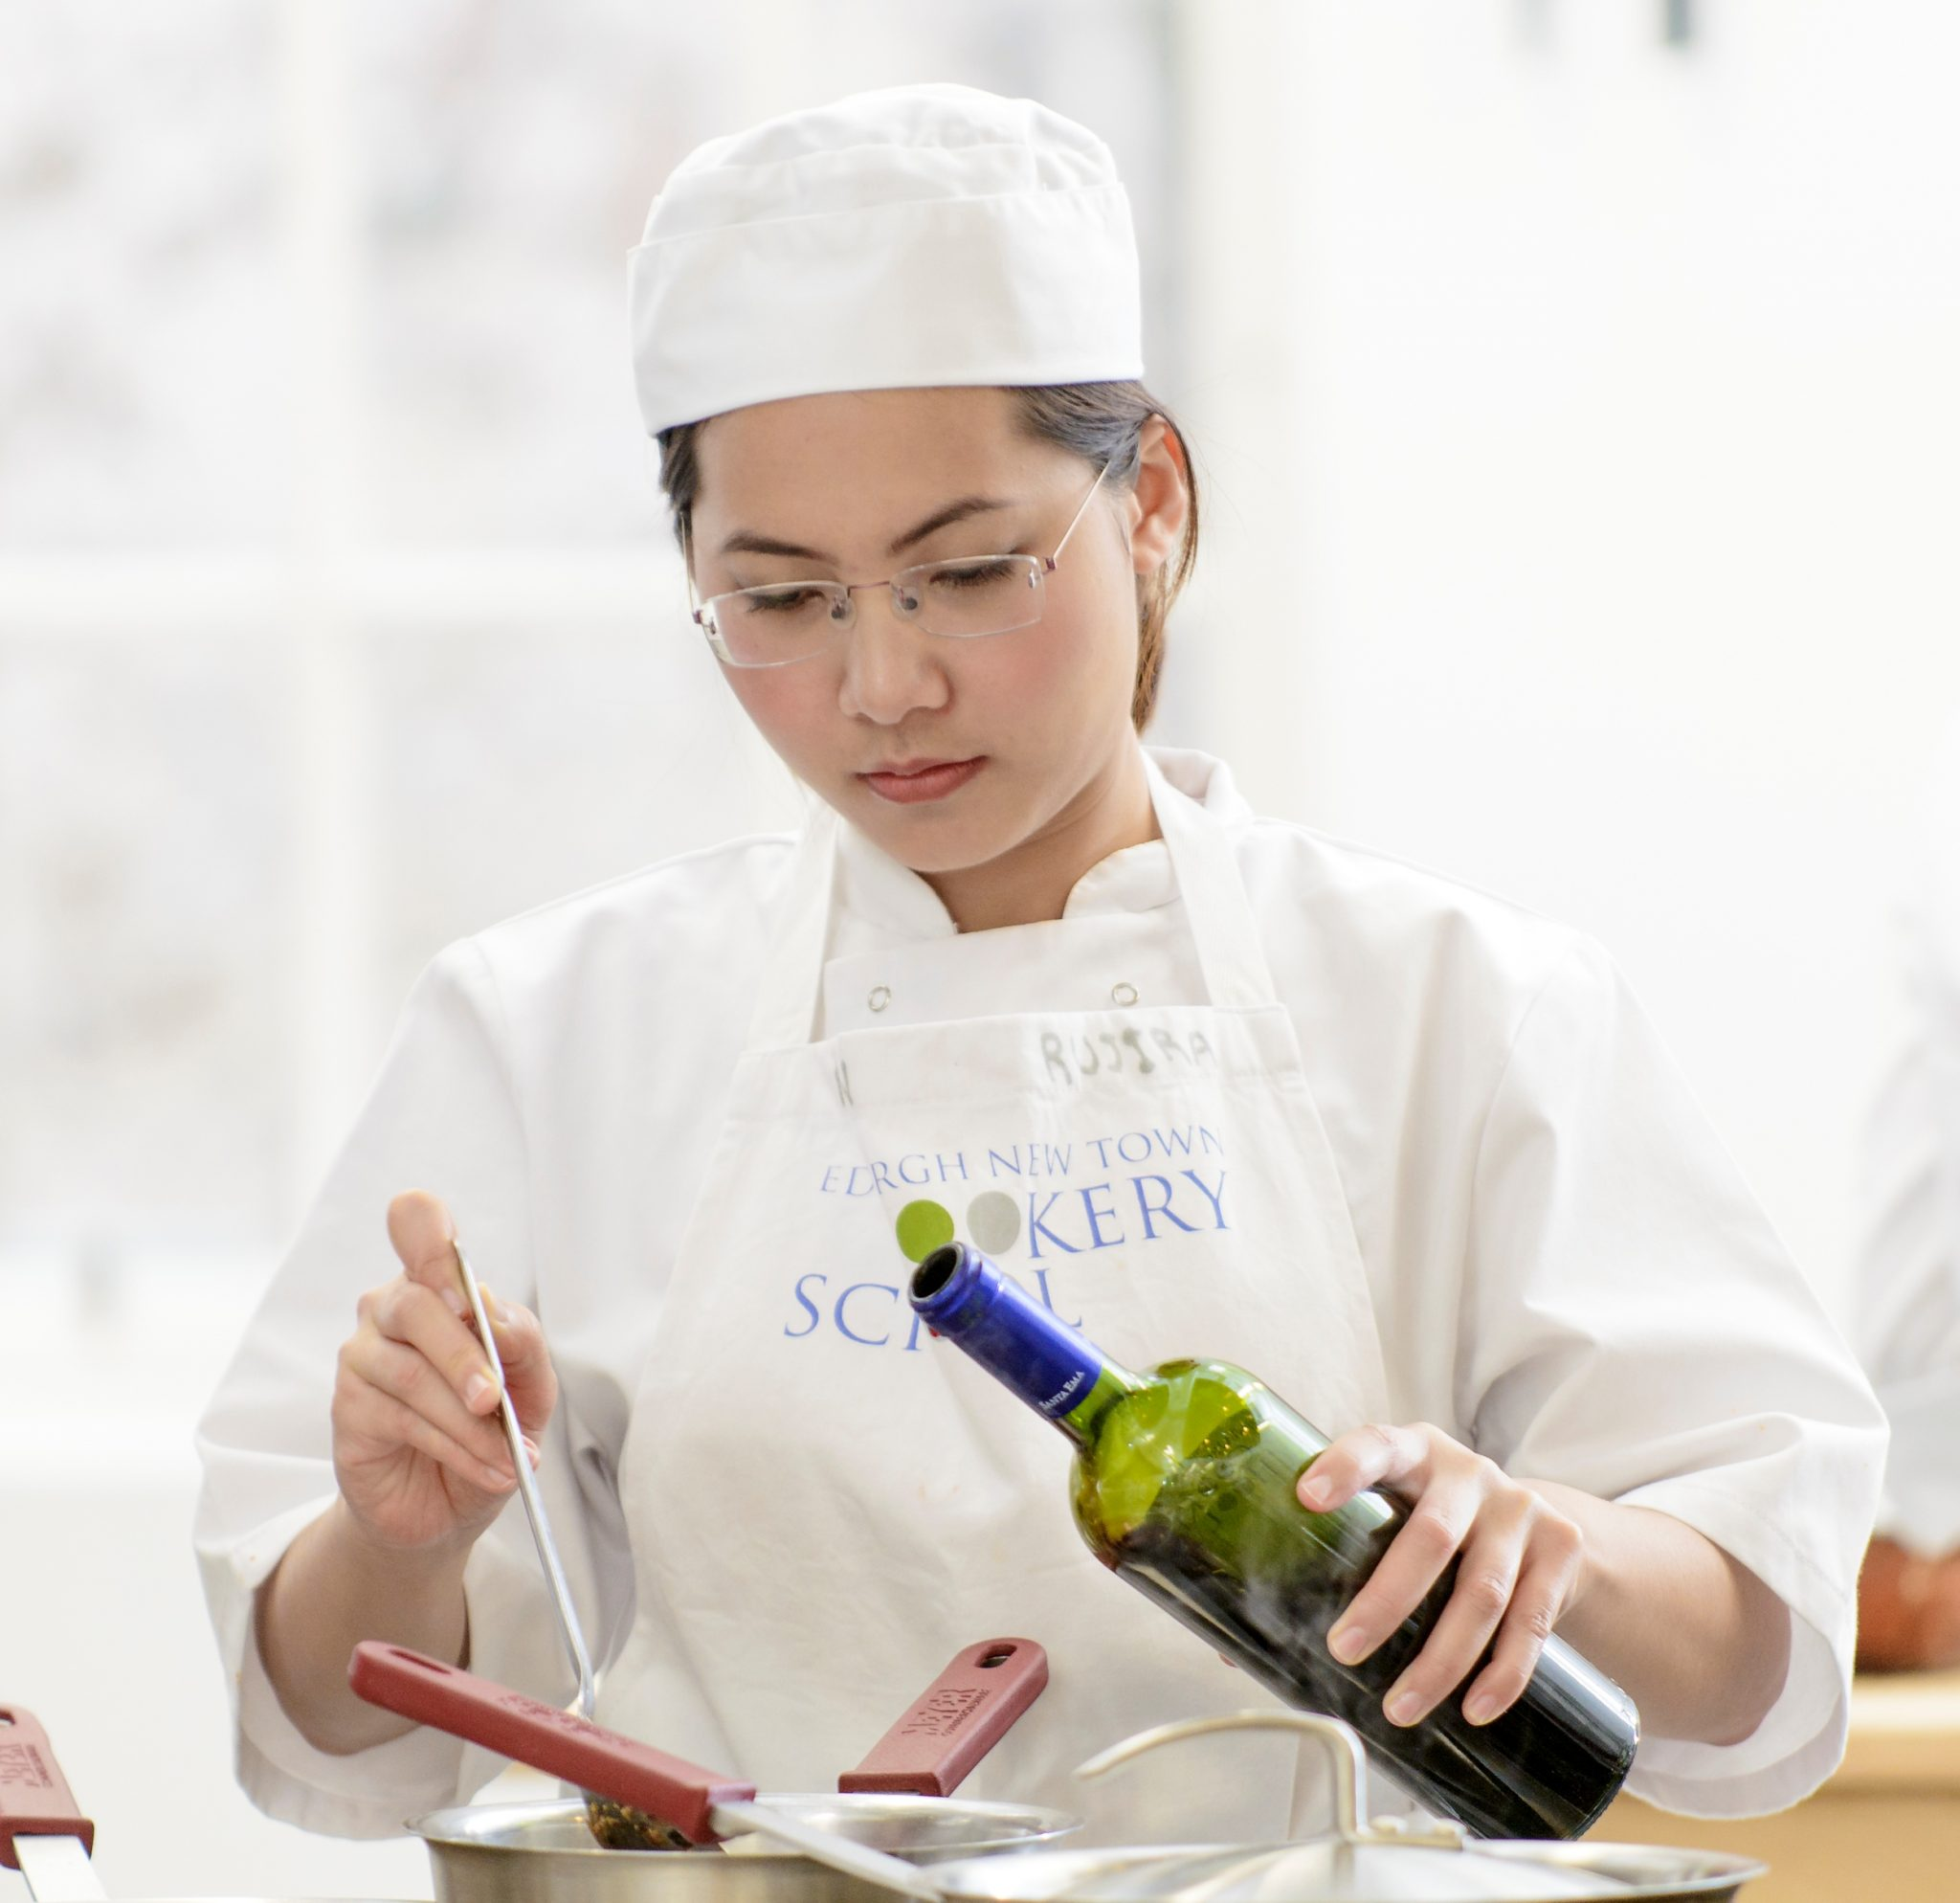 Turn a Passion for Food into a Career